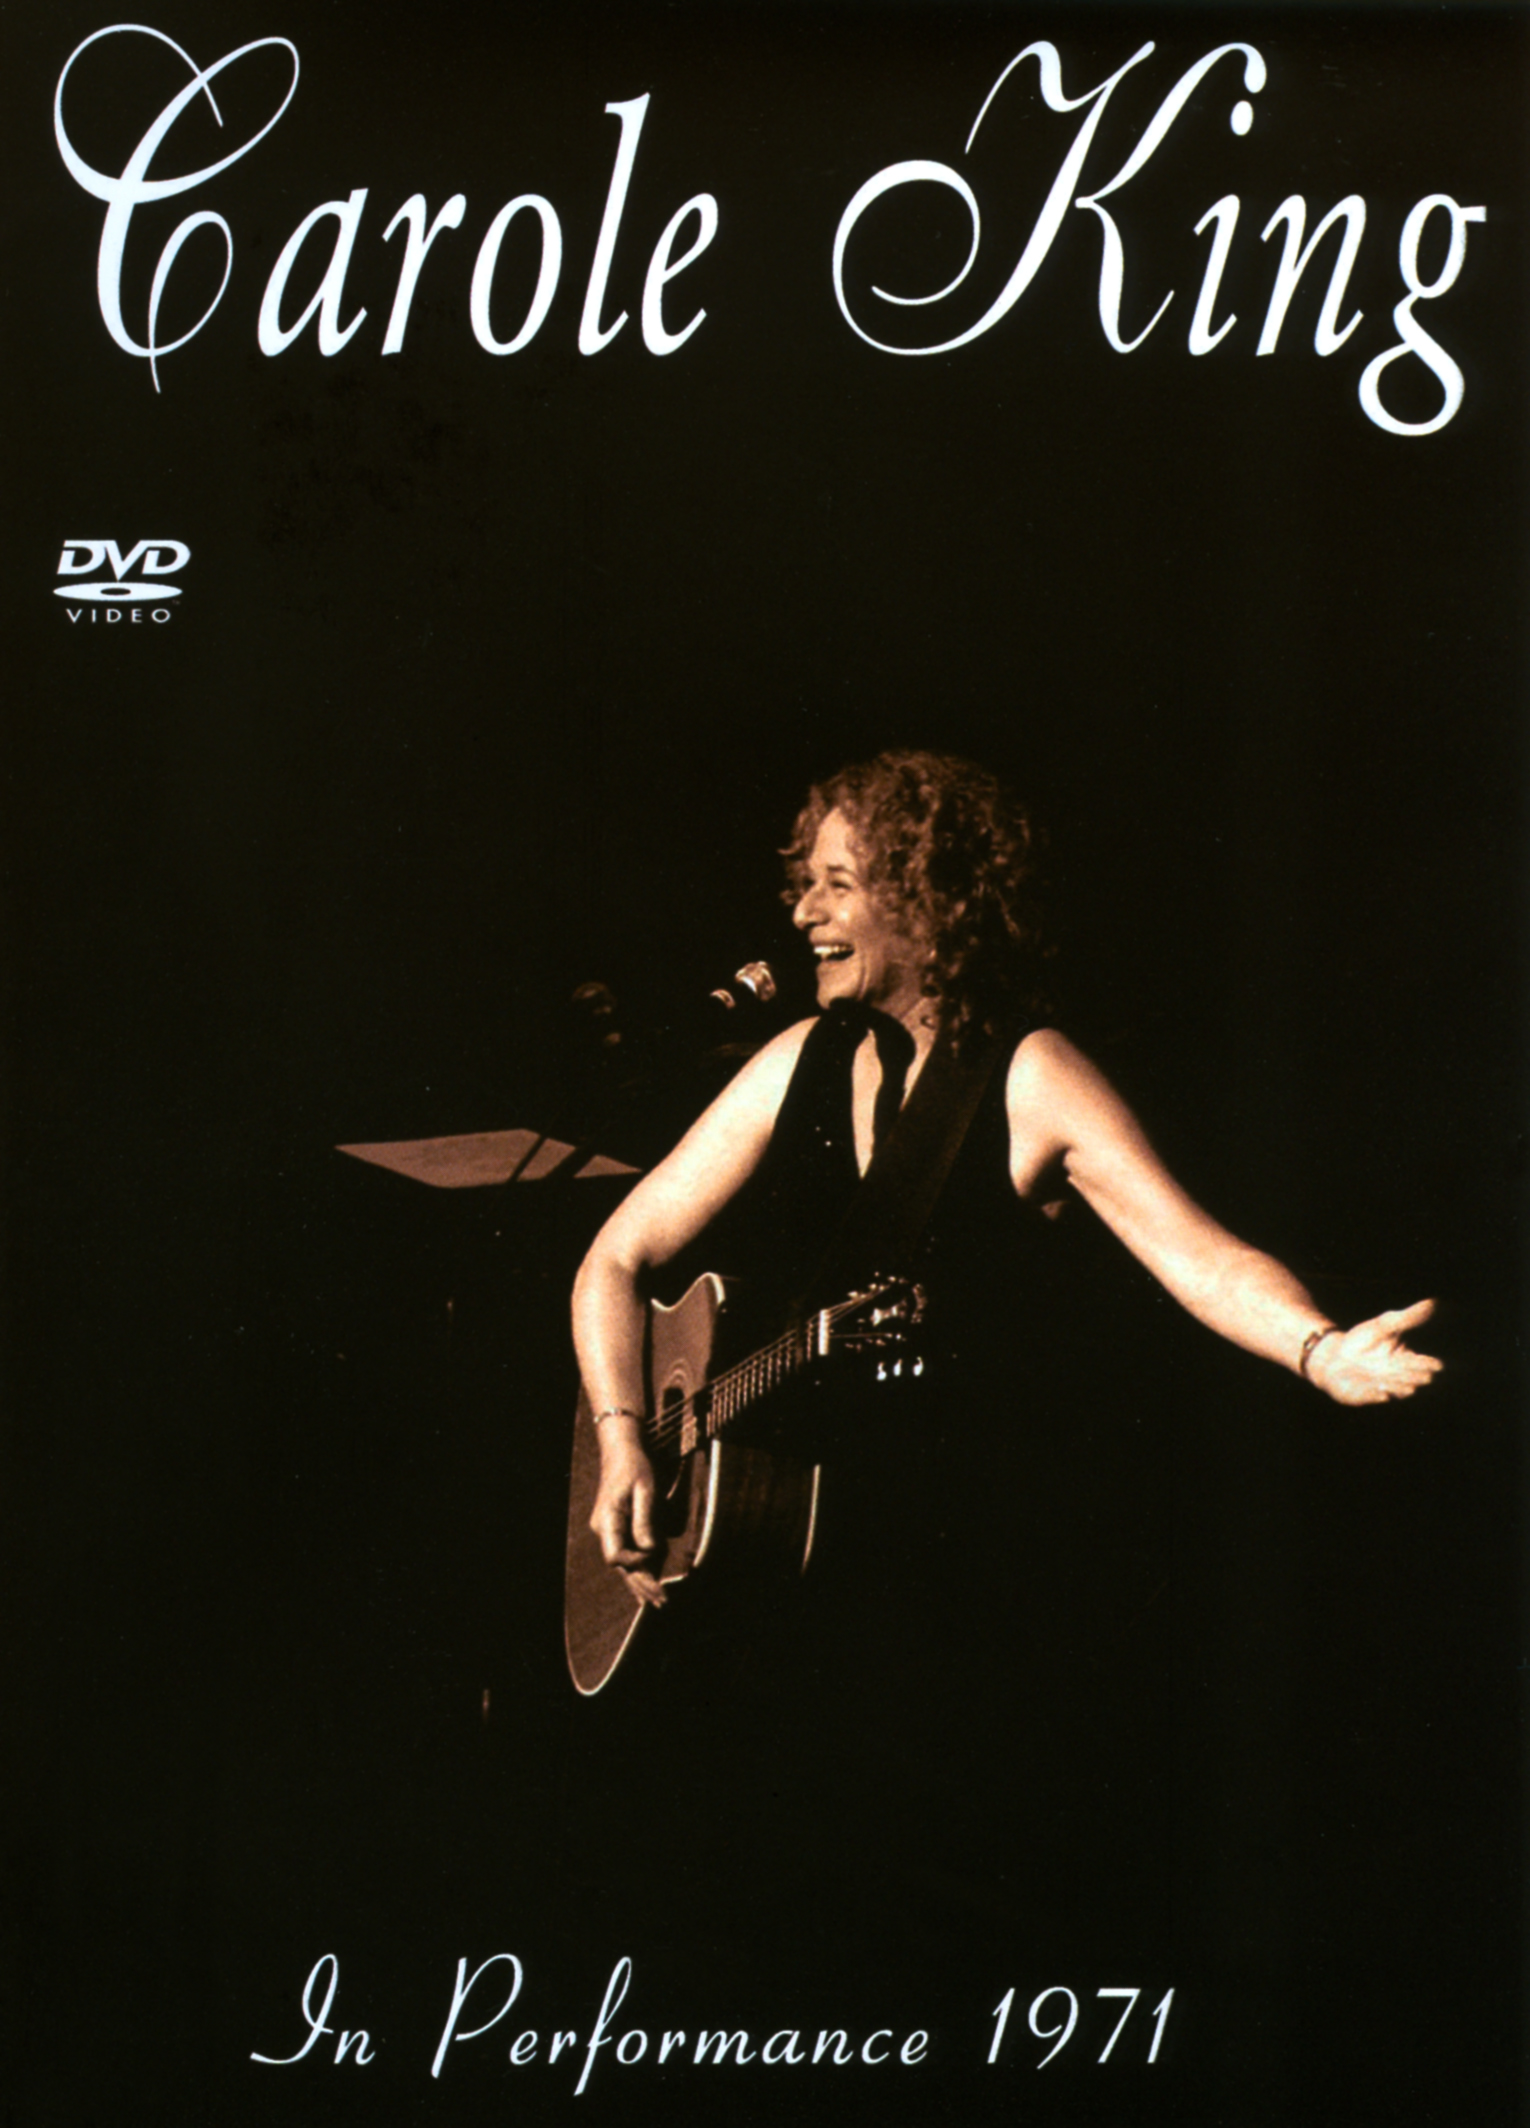 Carole King: In Performance